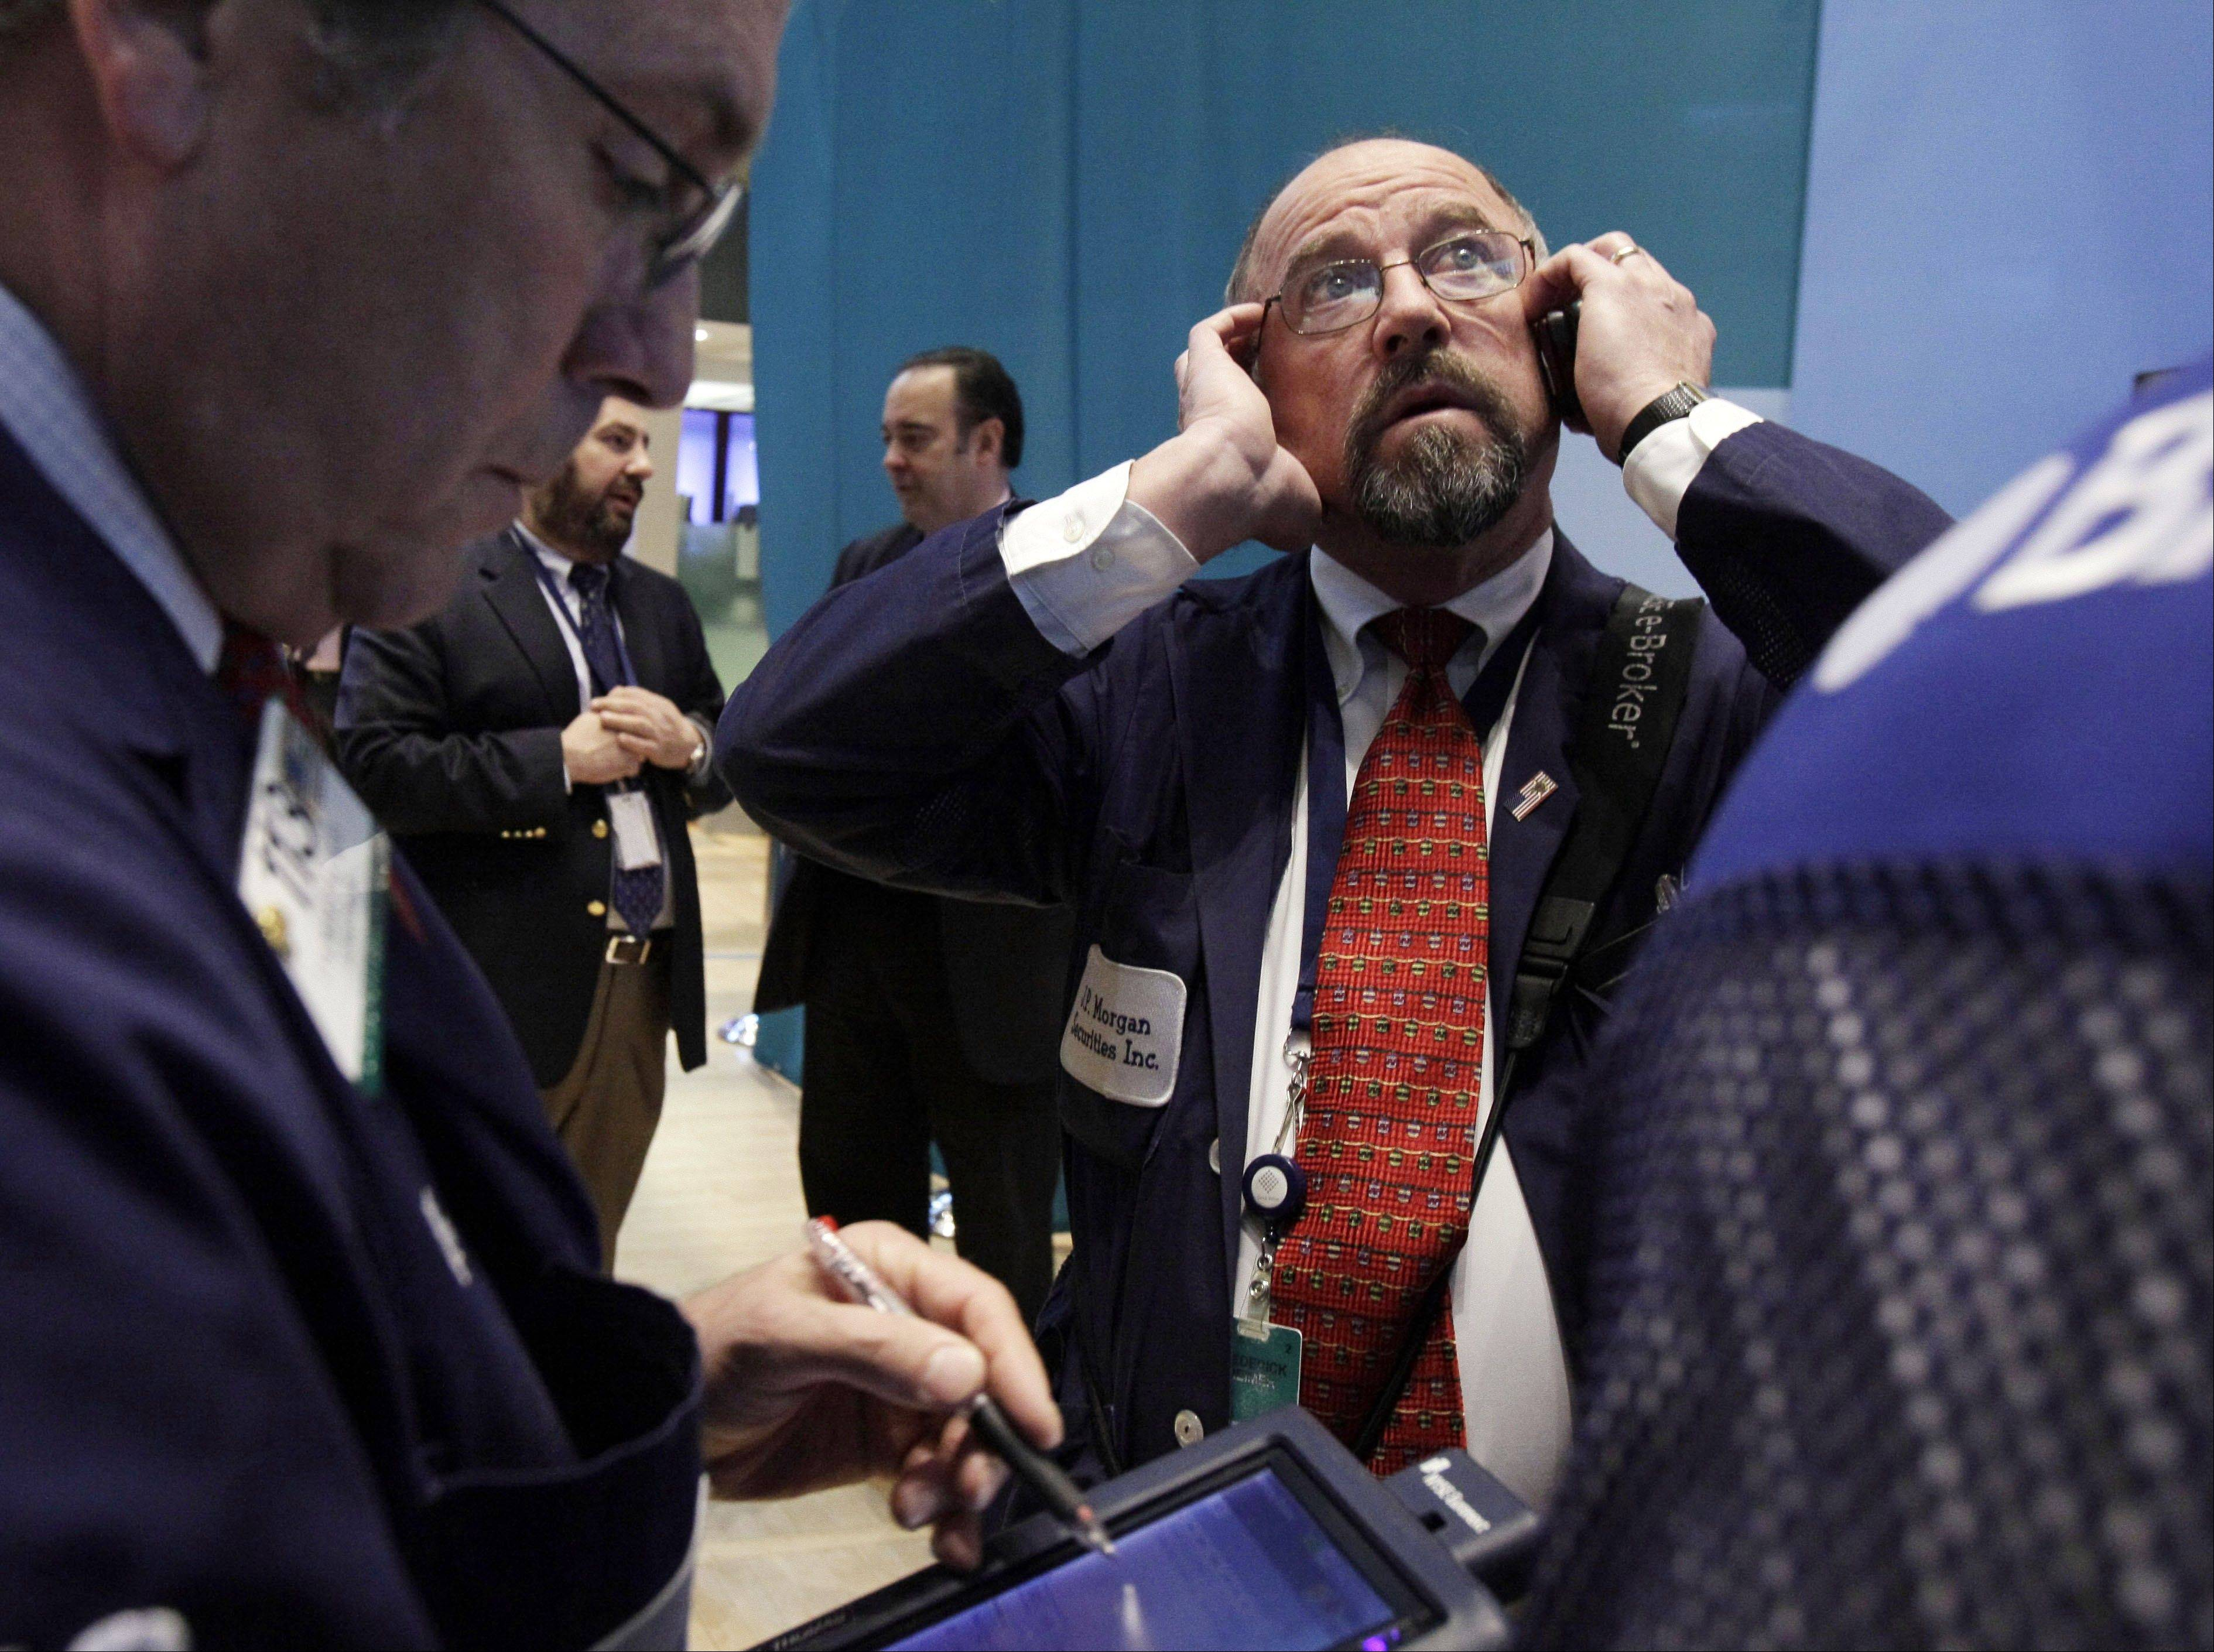 U.S. stocks retreated, snapping a six-day advance in the Standard & Poor�s 500 Index, as the standoff in federal budget negotiations overshadowed a decline in jobless claims and a rebound in retail sales.